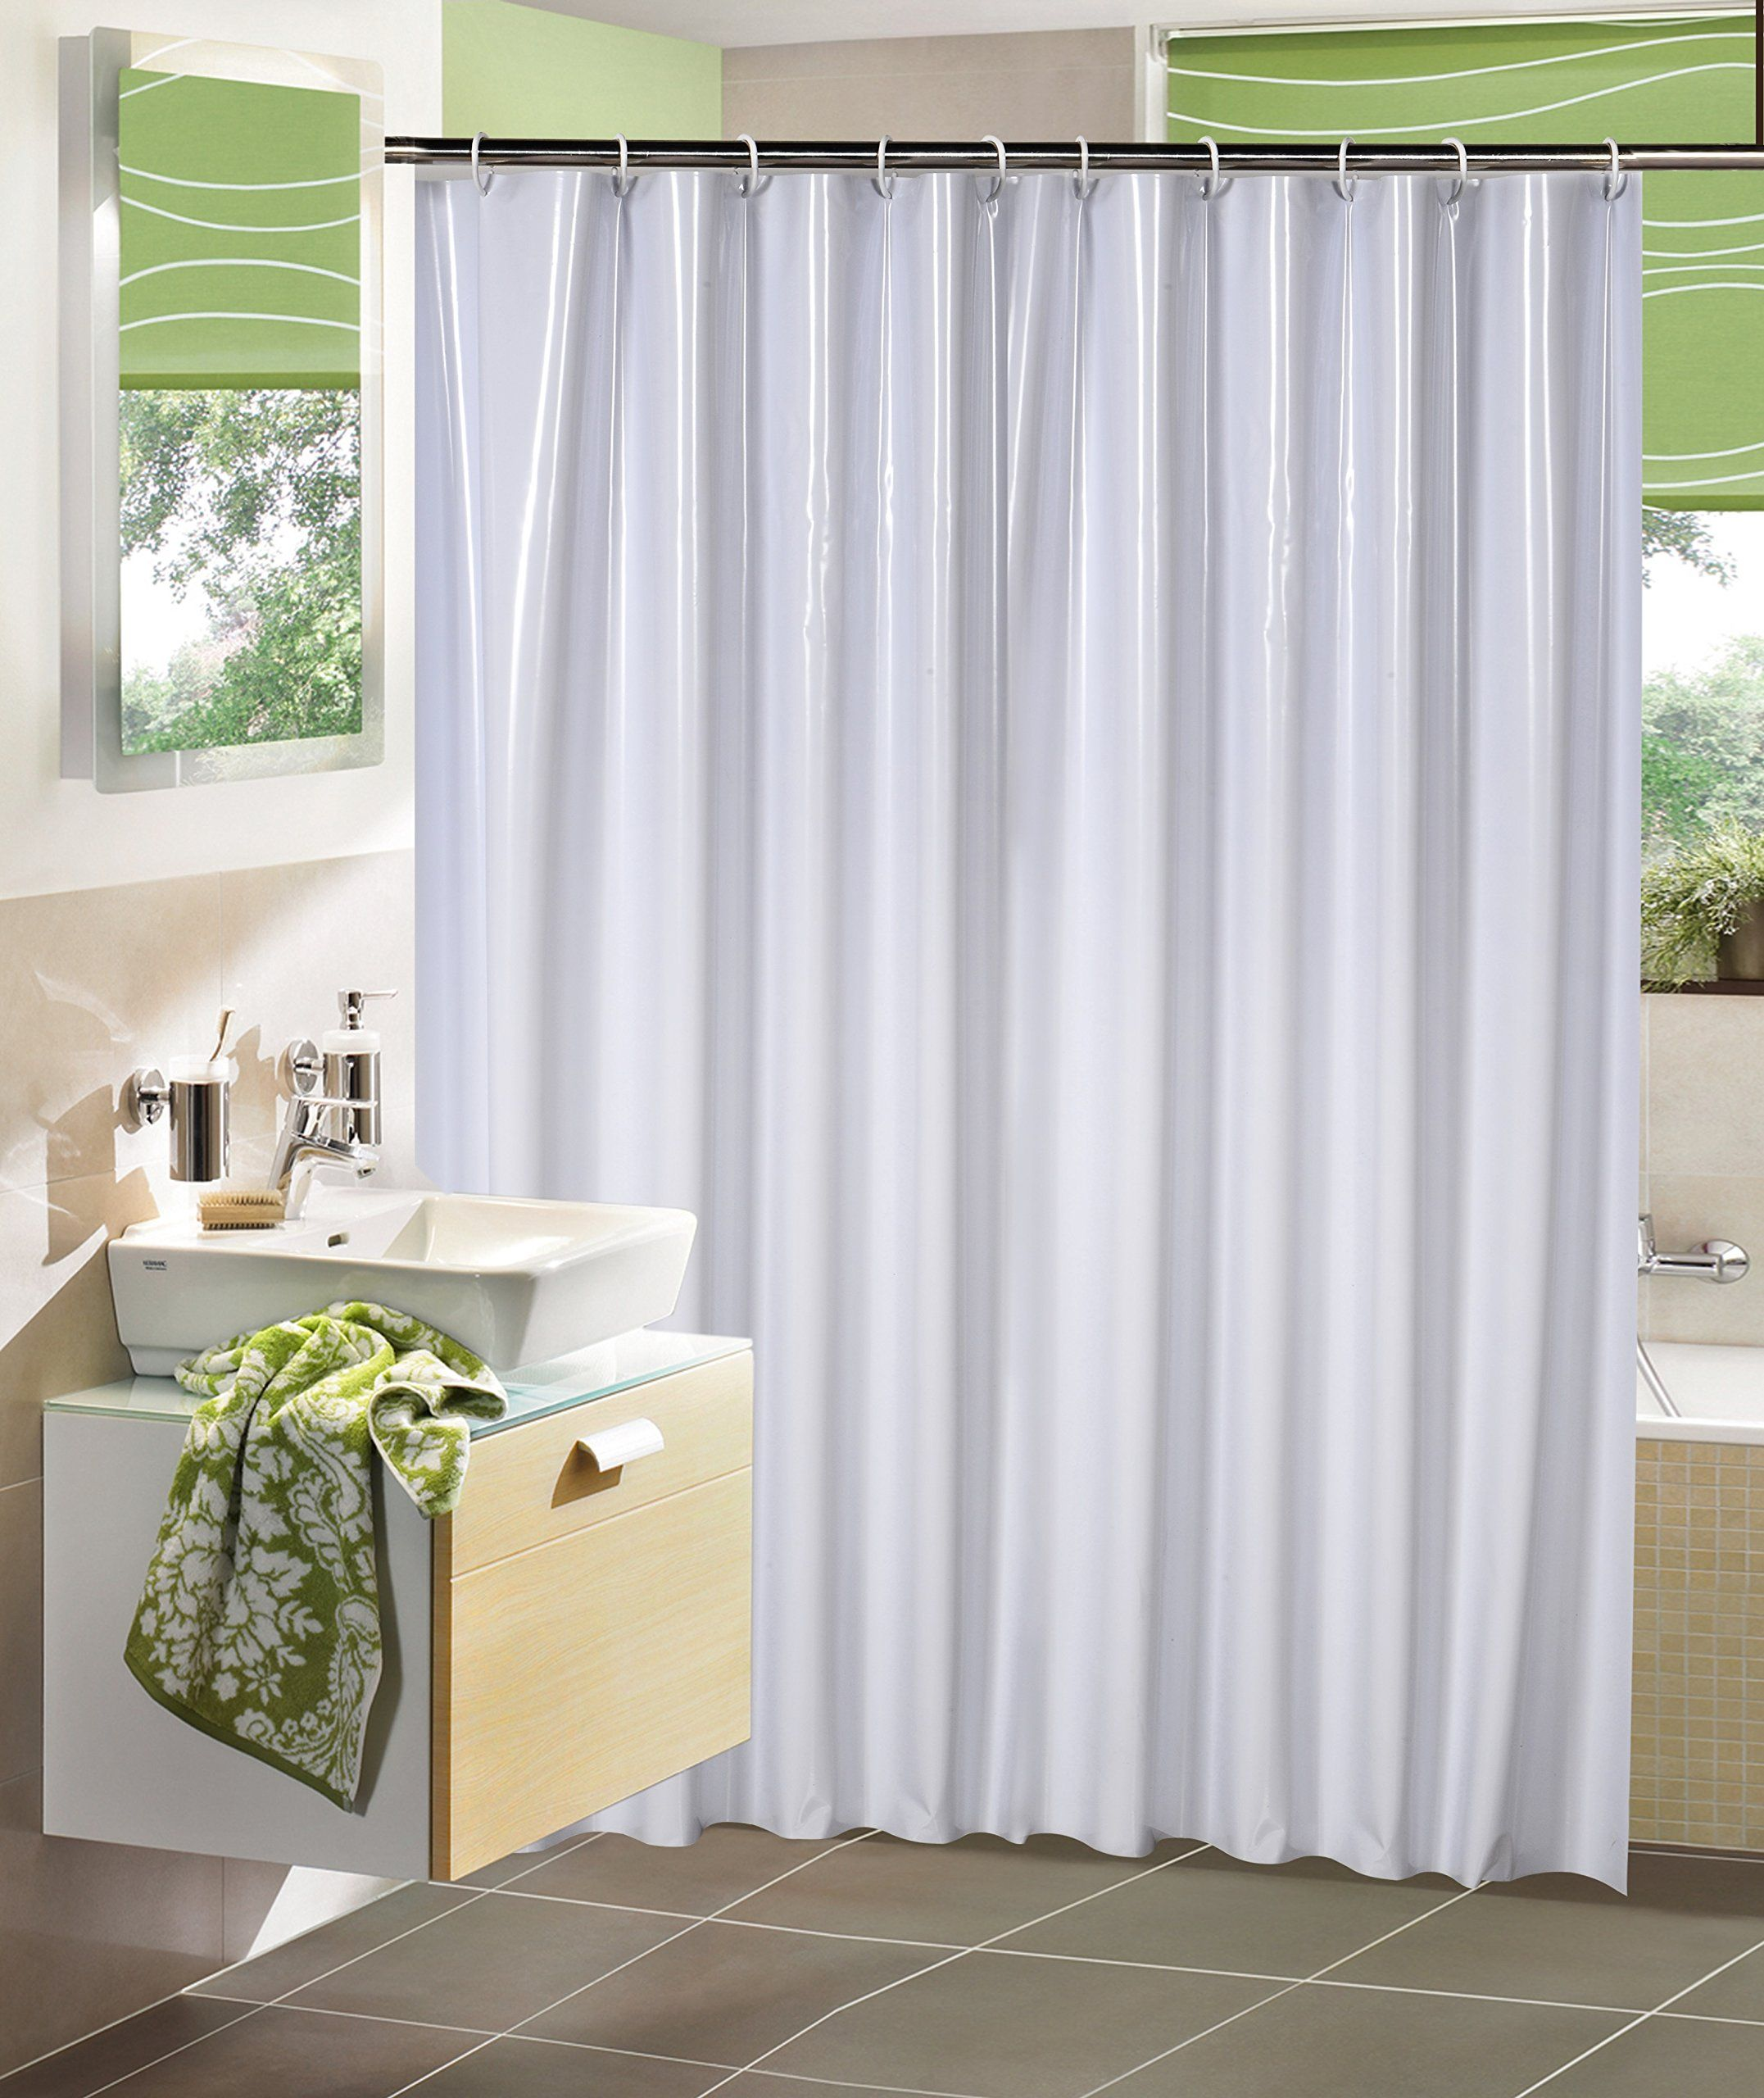 Amazon garden home shower curtain with hooks no more mildew